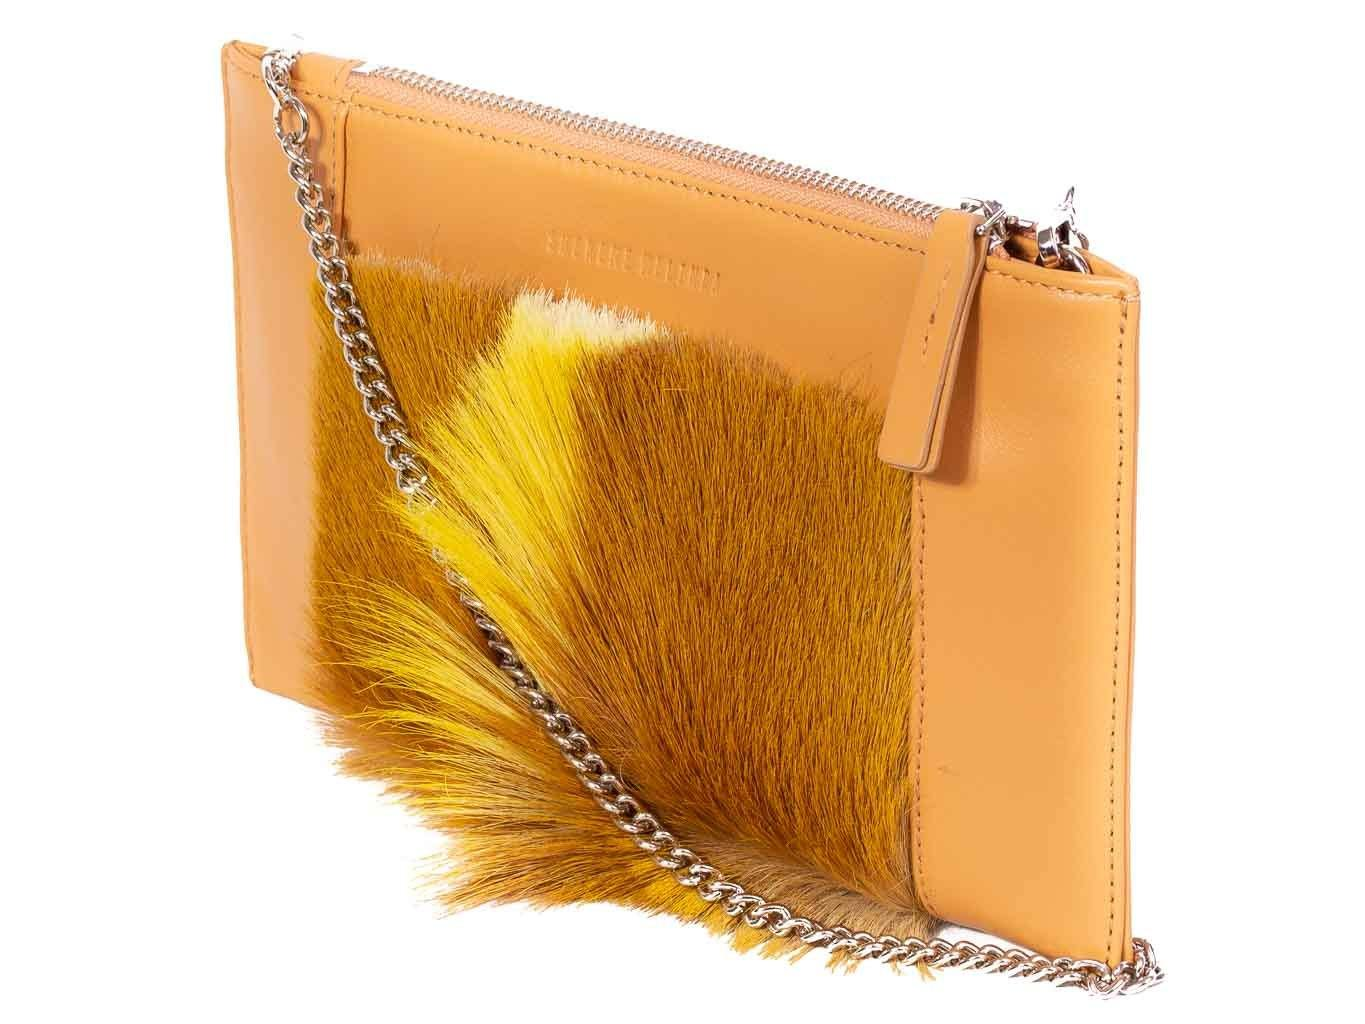 Clutch Springbok Handbag in Sunflower Yellow with a fan feature by Sherene Melinda front strap